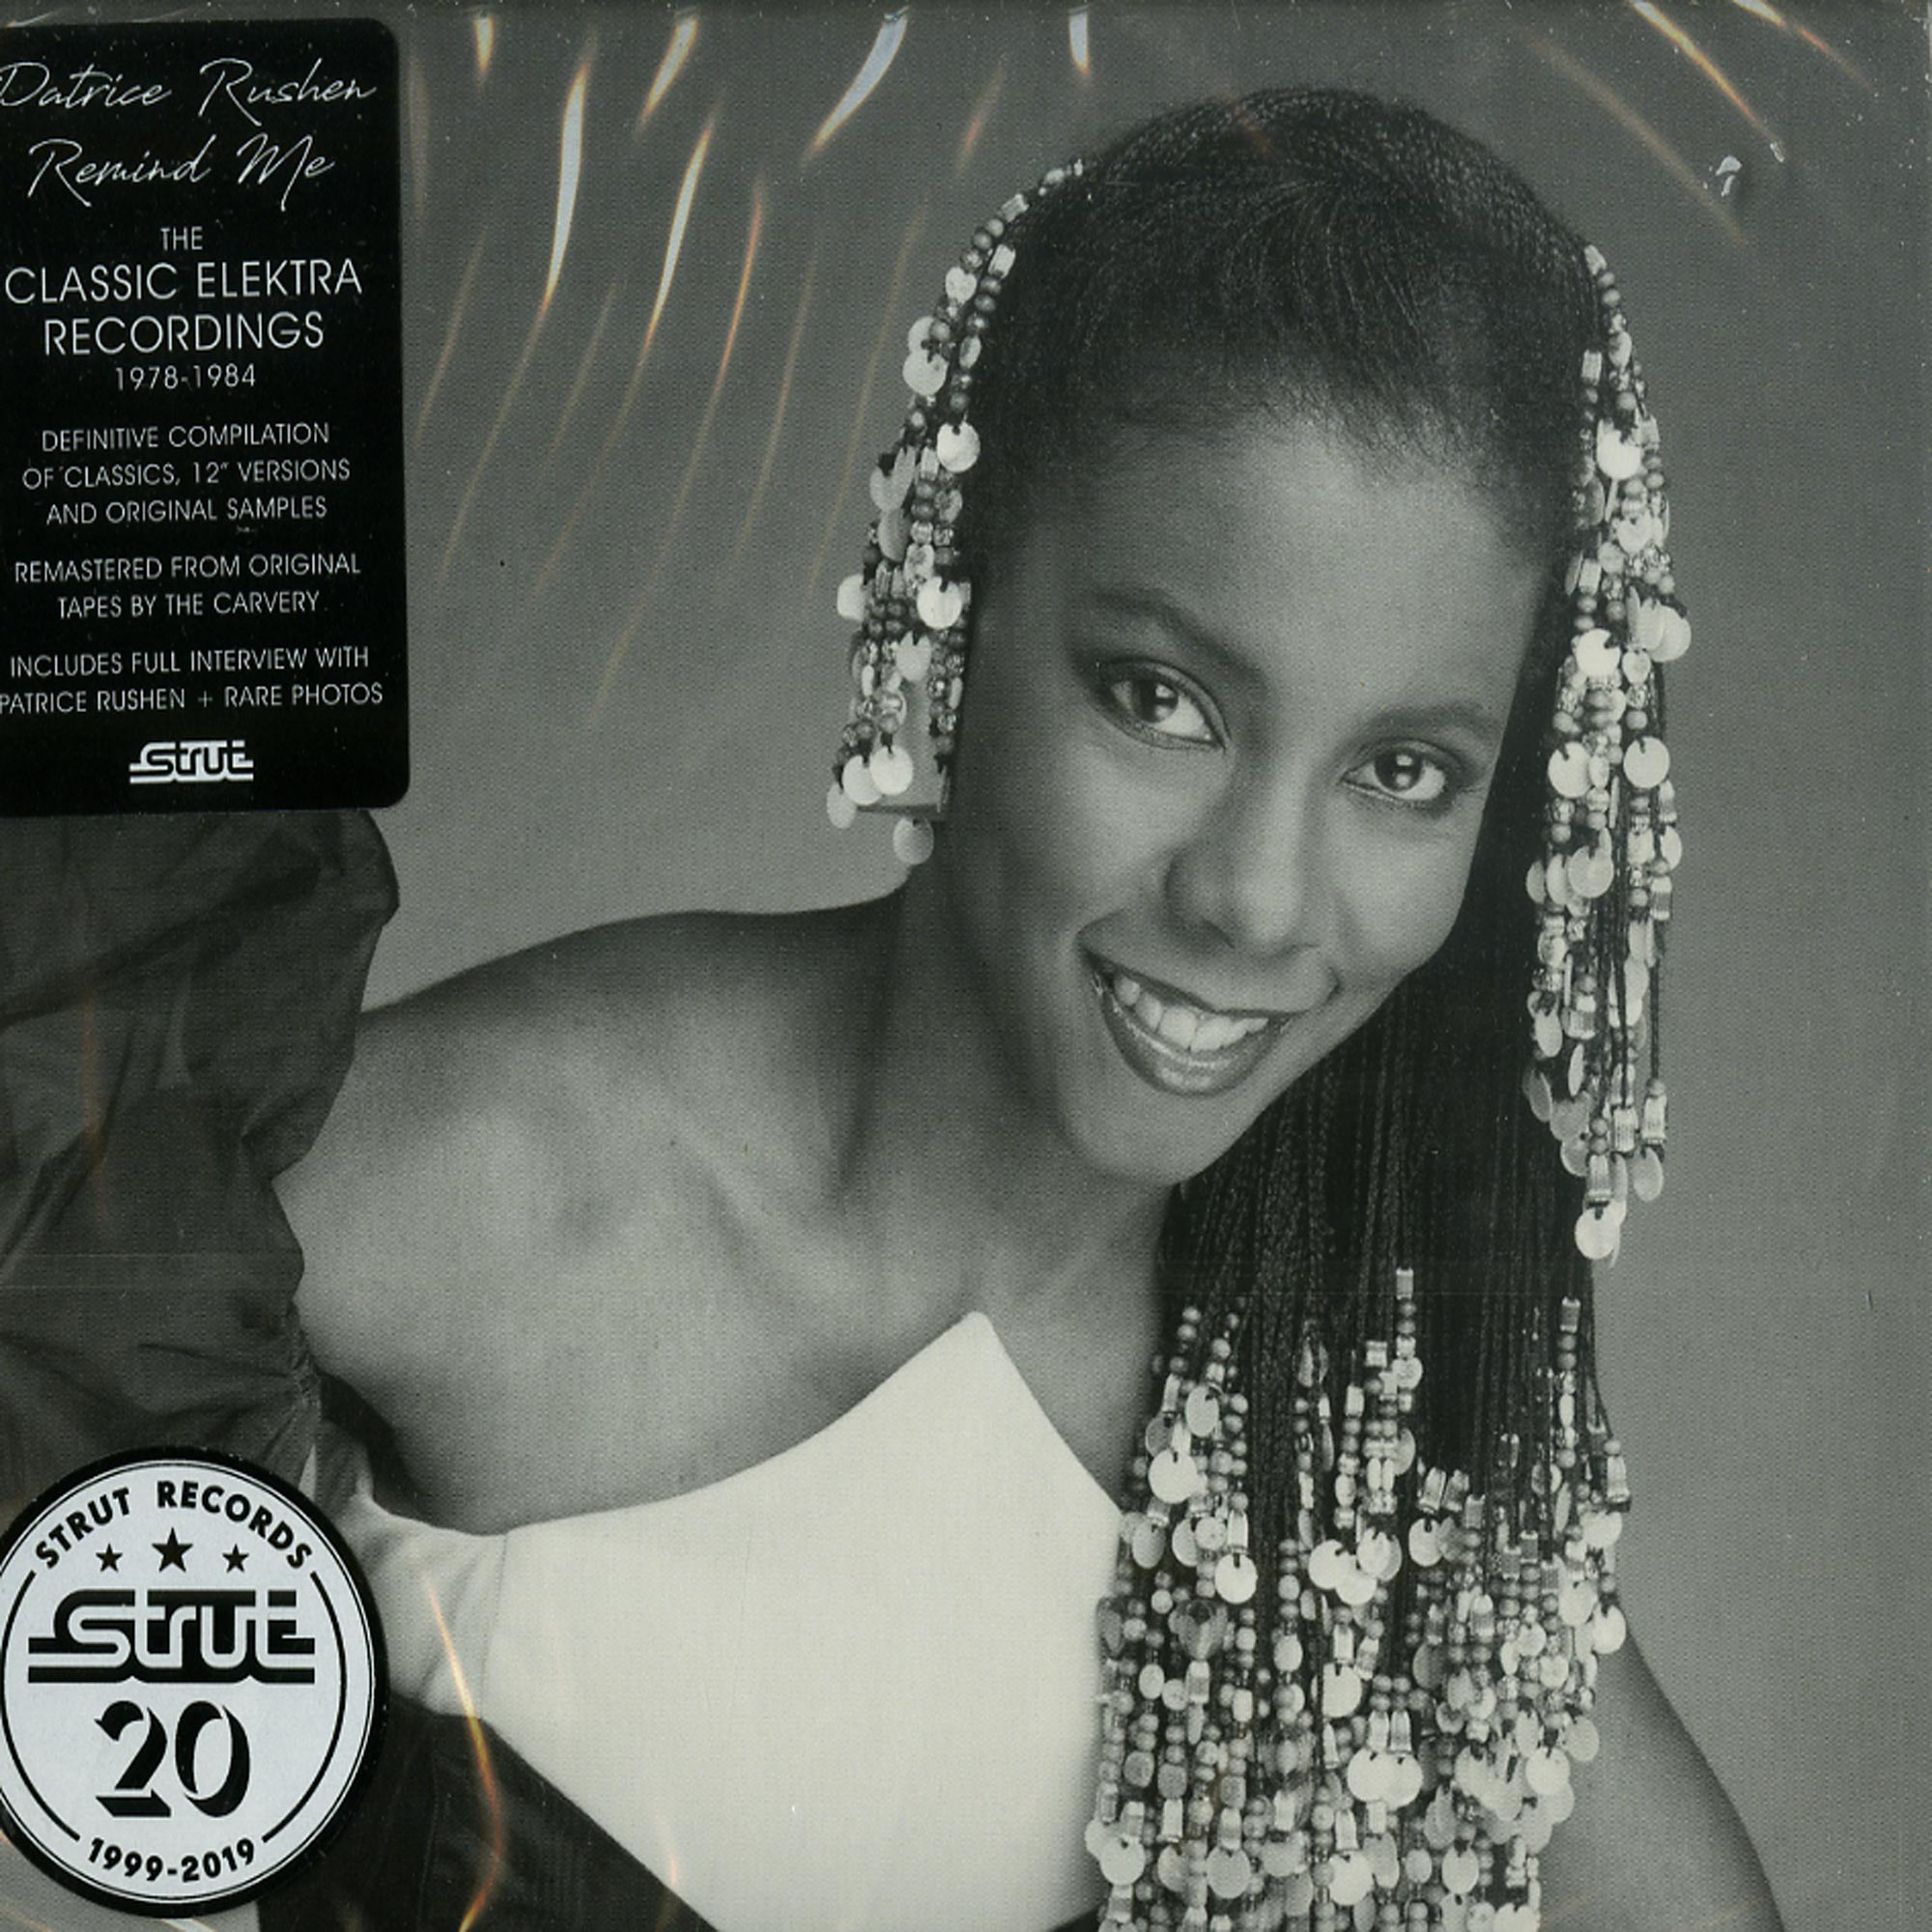 Patrice Rushen - REMIND ME